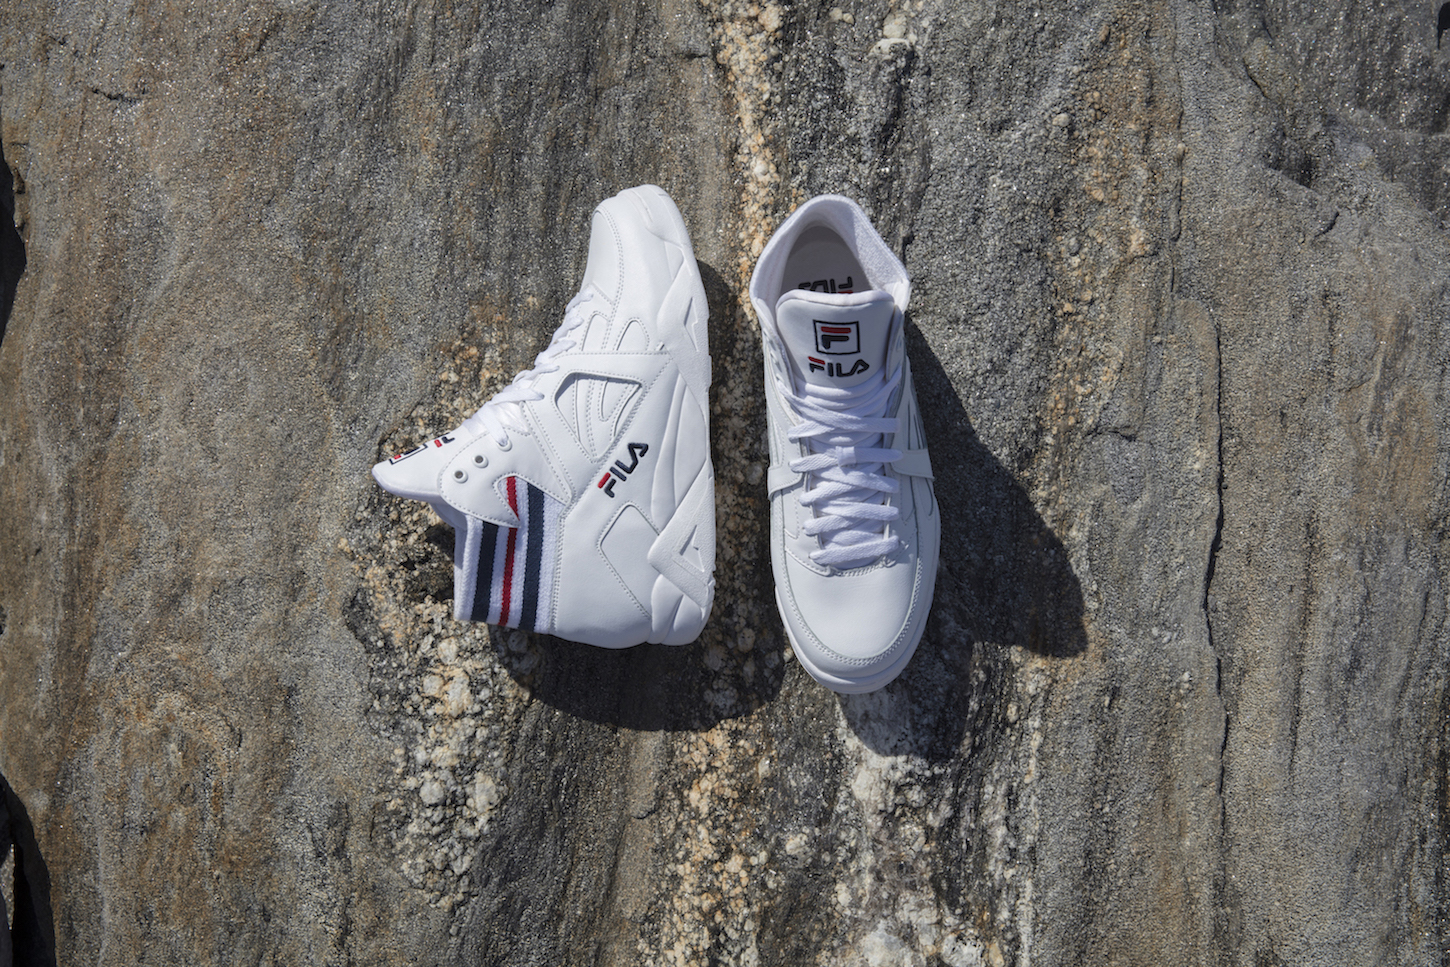 The Fila Cage 'All-American' is